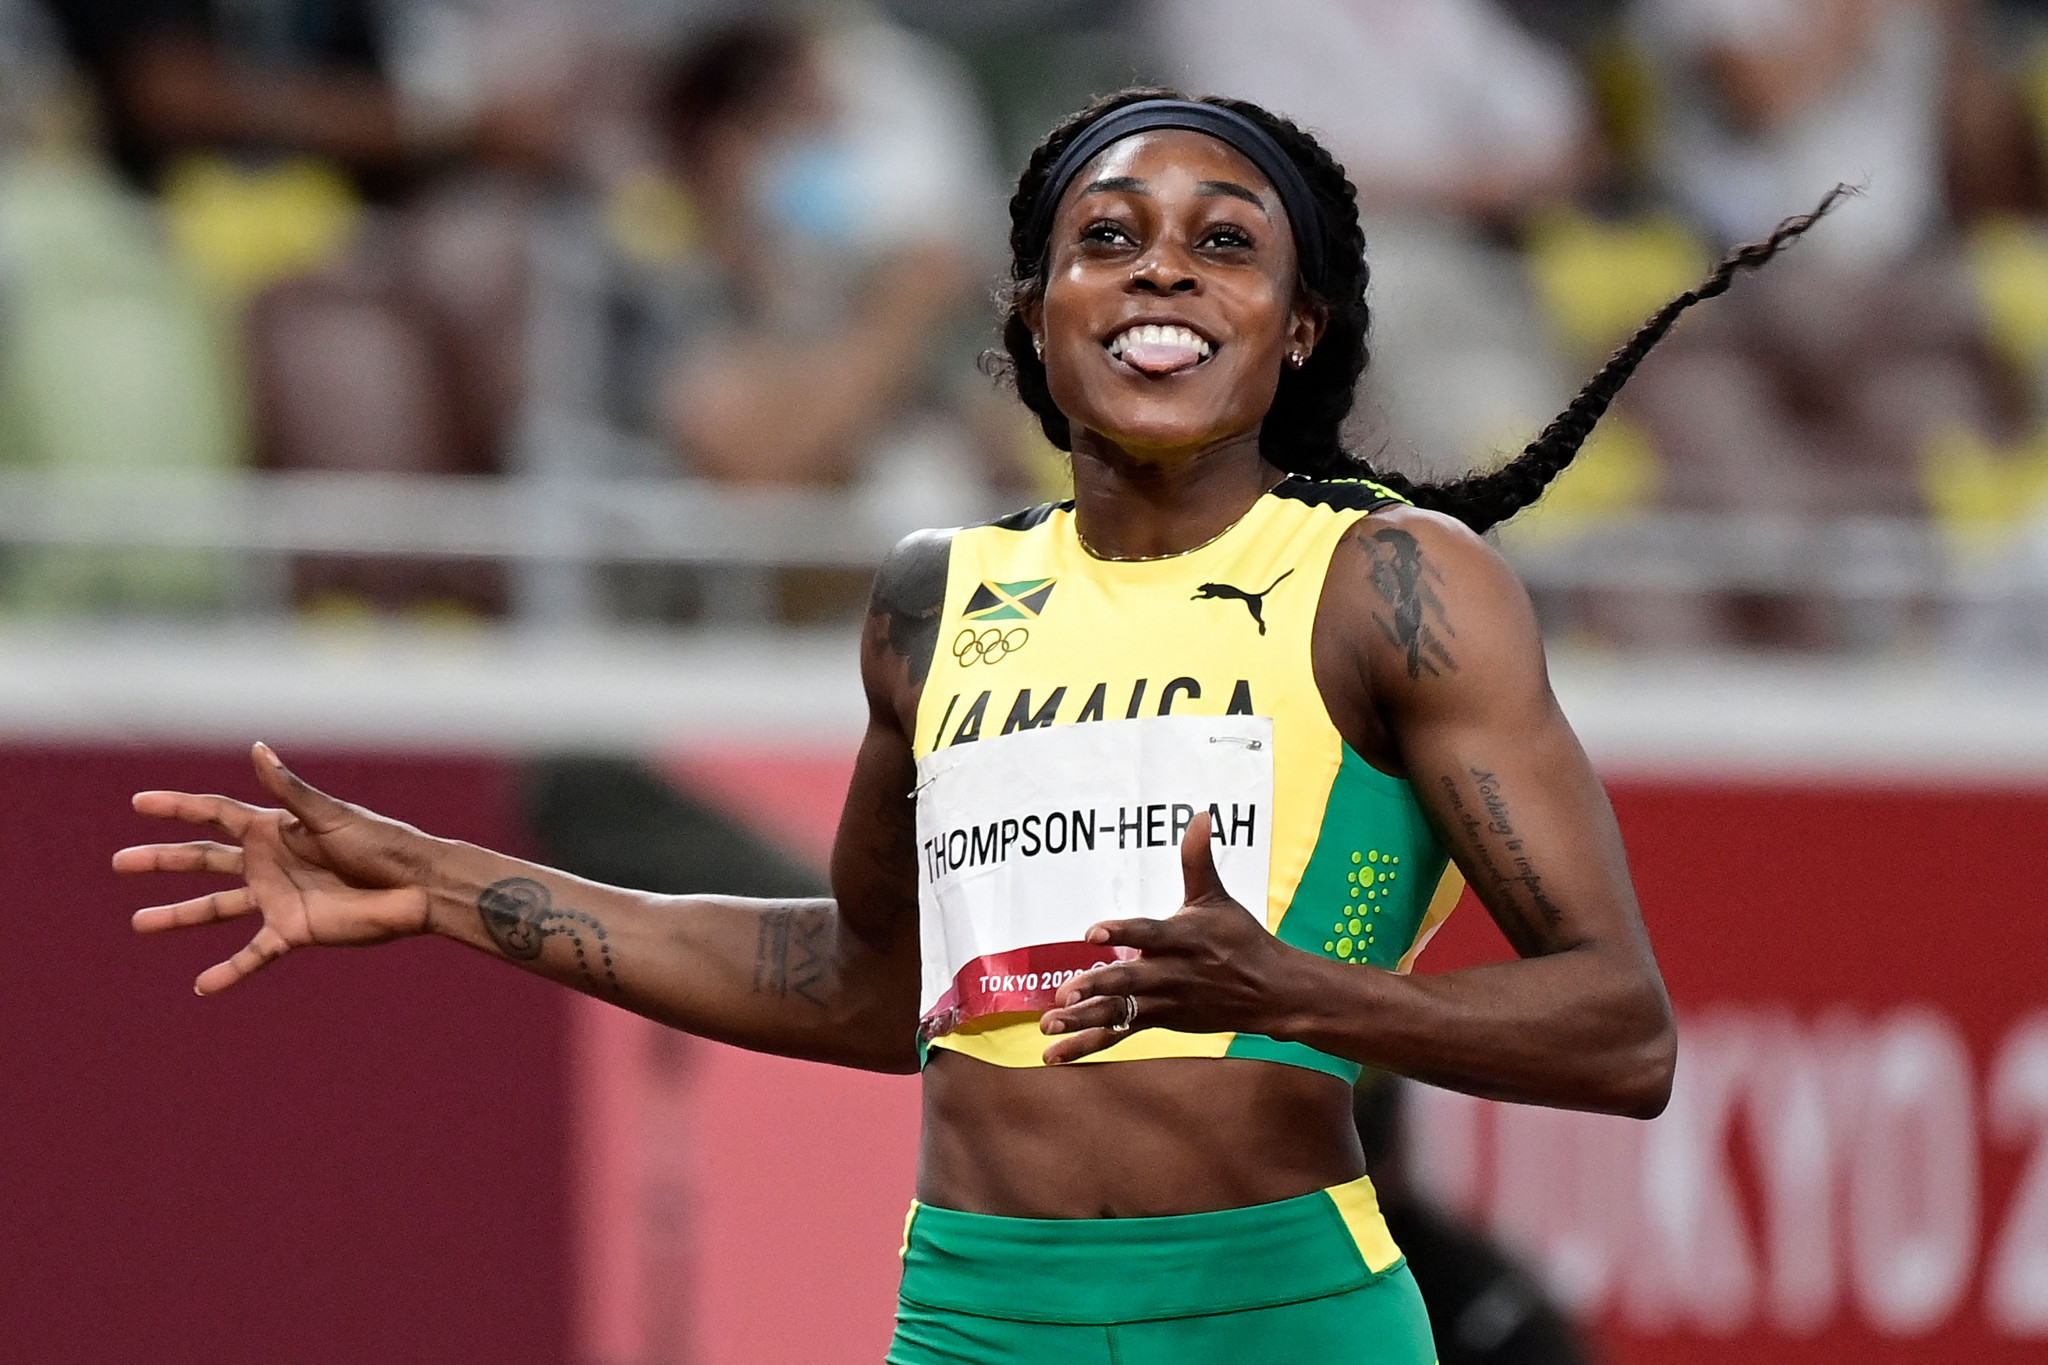 Jamaica's Elaine Thompson-Herah won the women's 200m, completing a so-called double-double - back-to-back Olympic 100m and 200m titles ©Getty Images